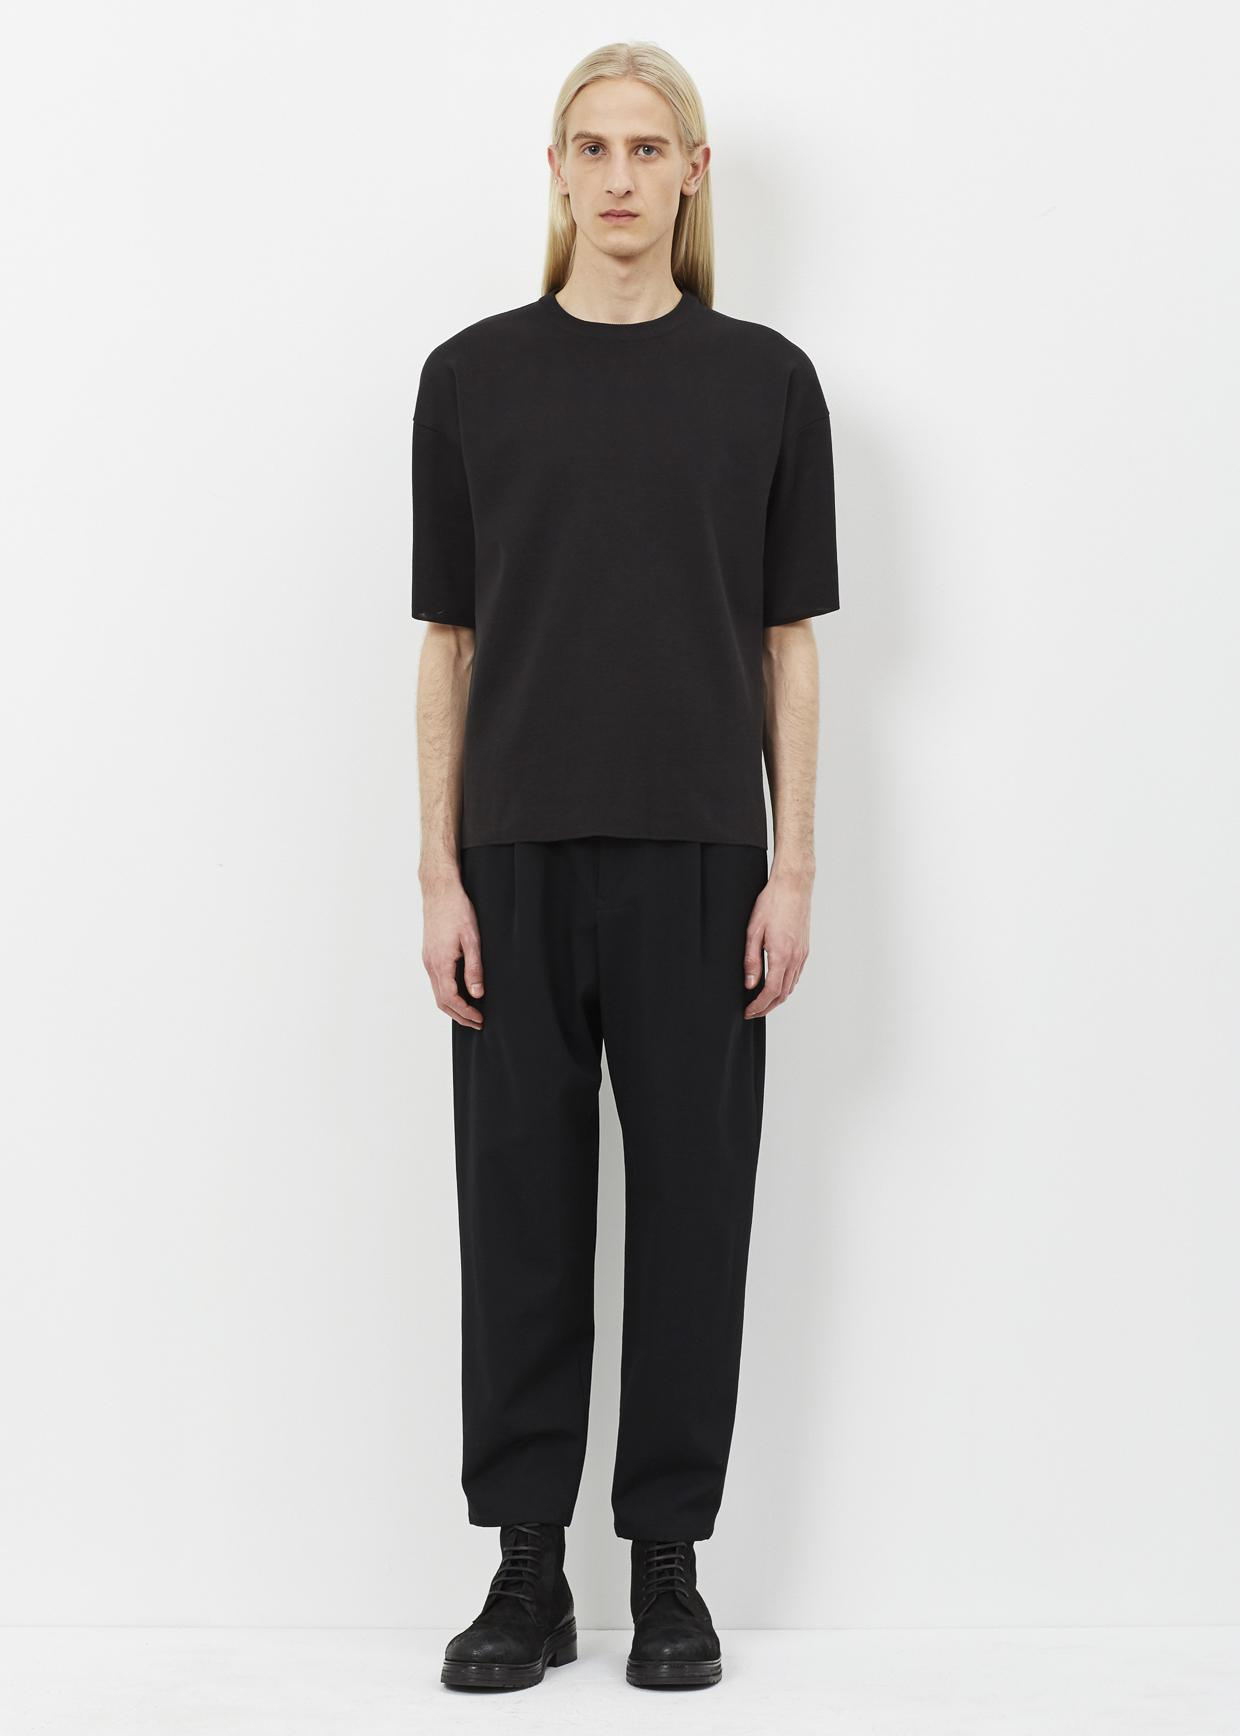 lyst jil sander black short sleeve crew in black for men. Black Bedroom Furniture Sets. Home Design Ideas